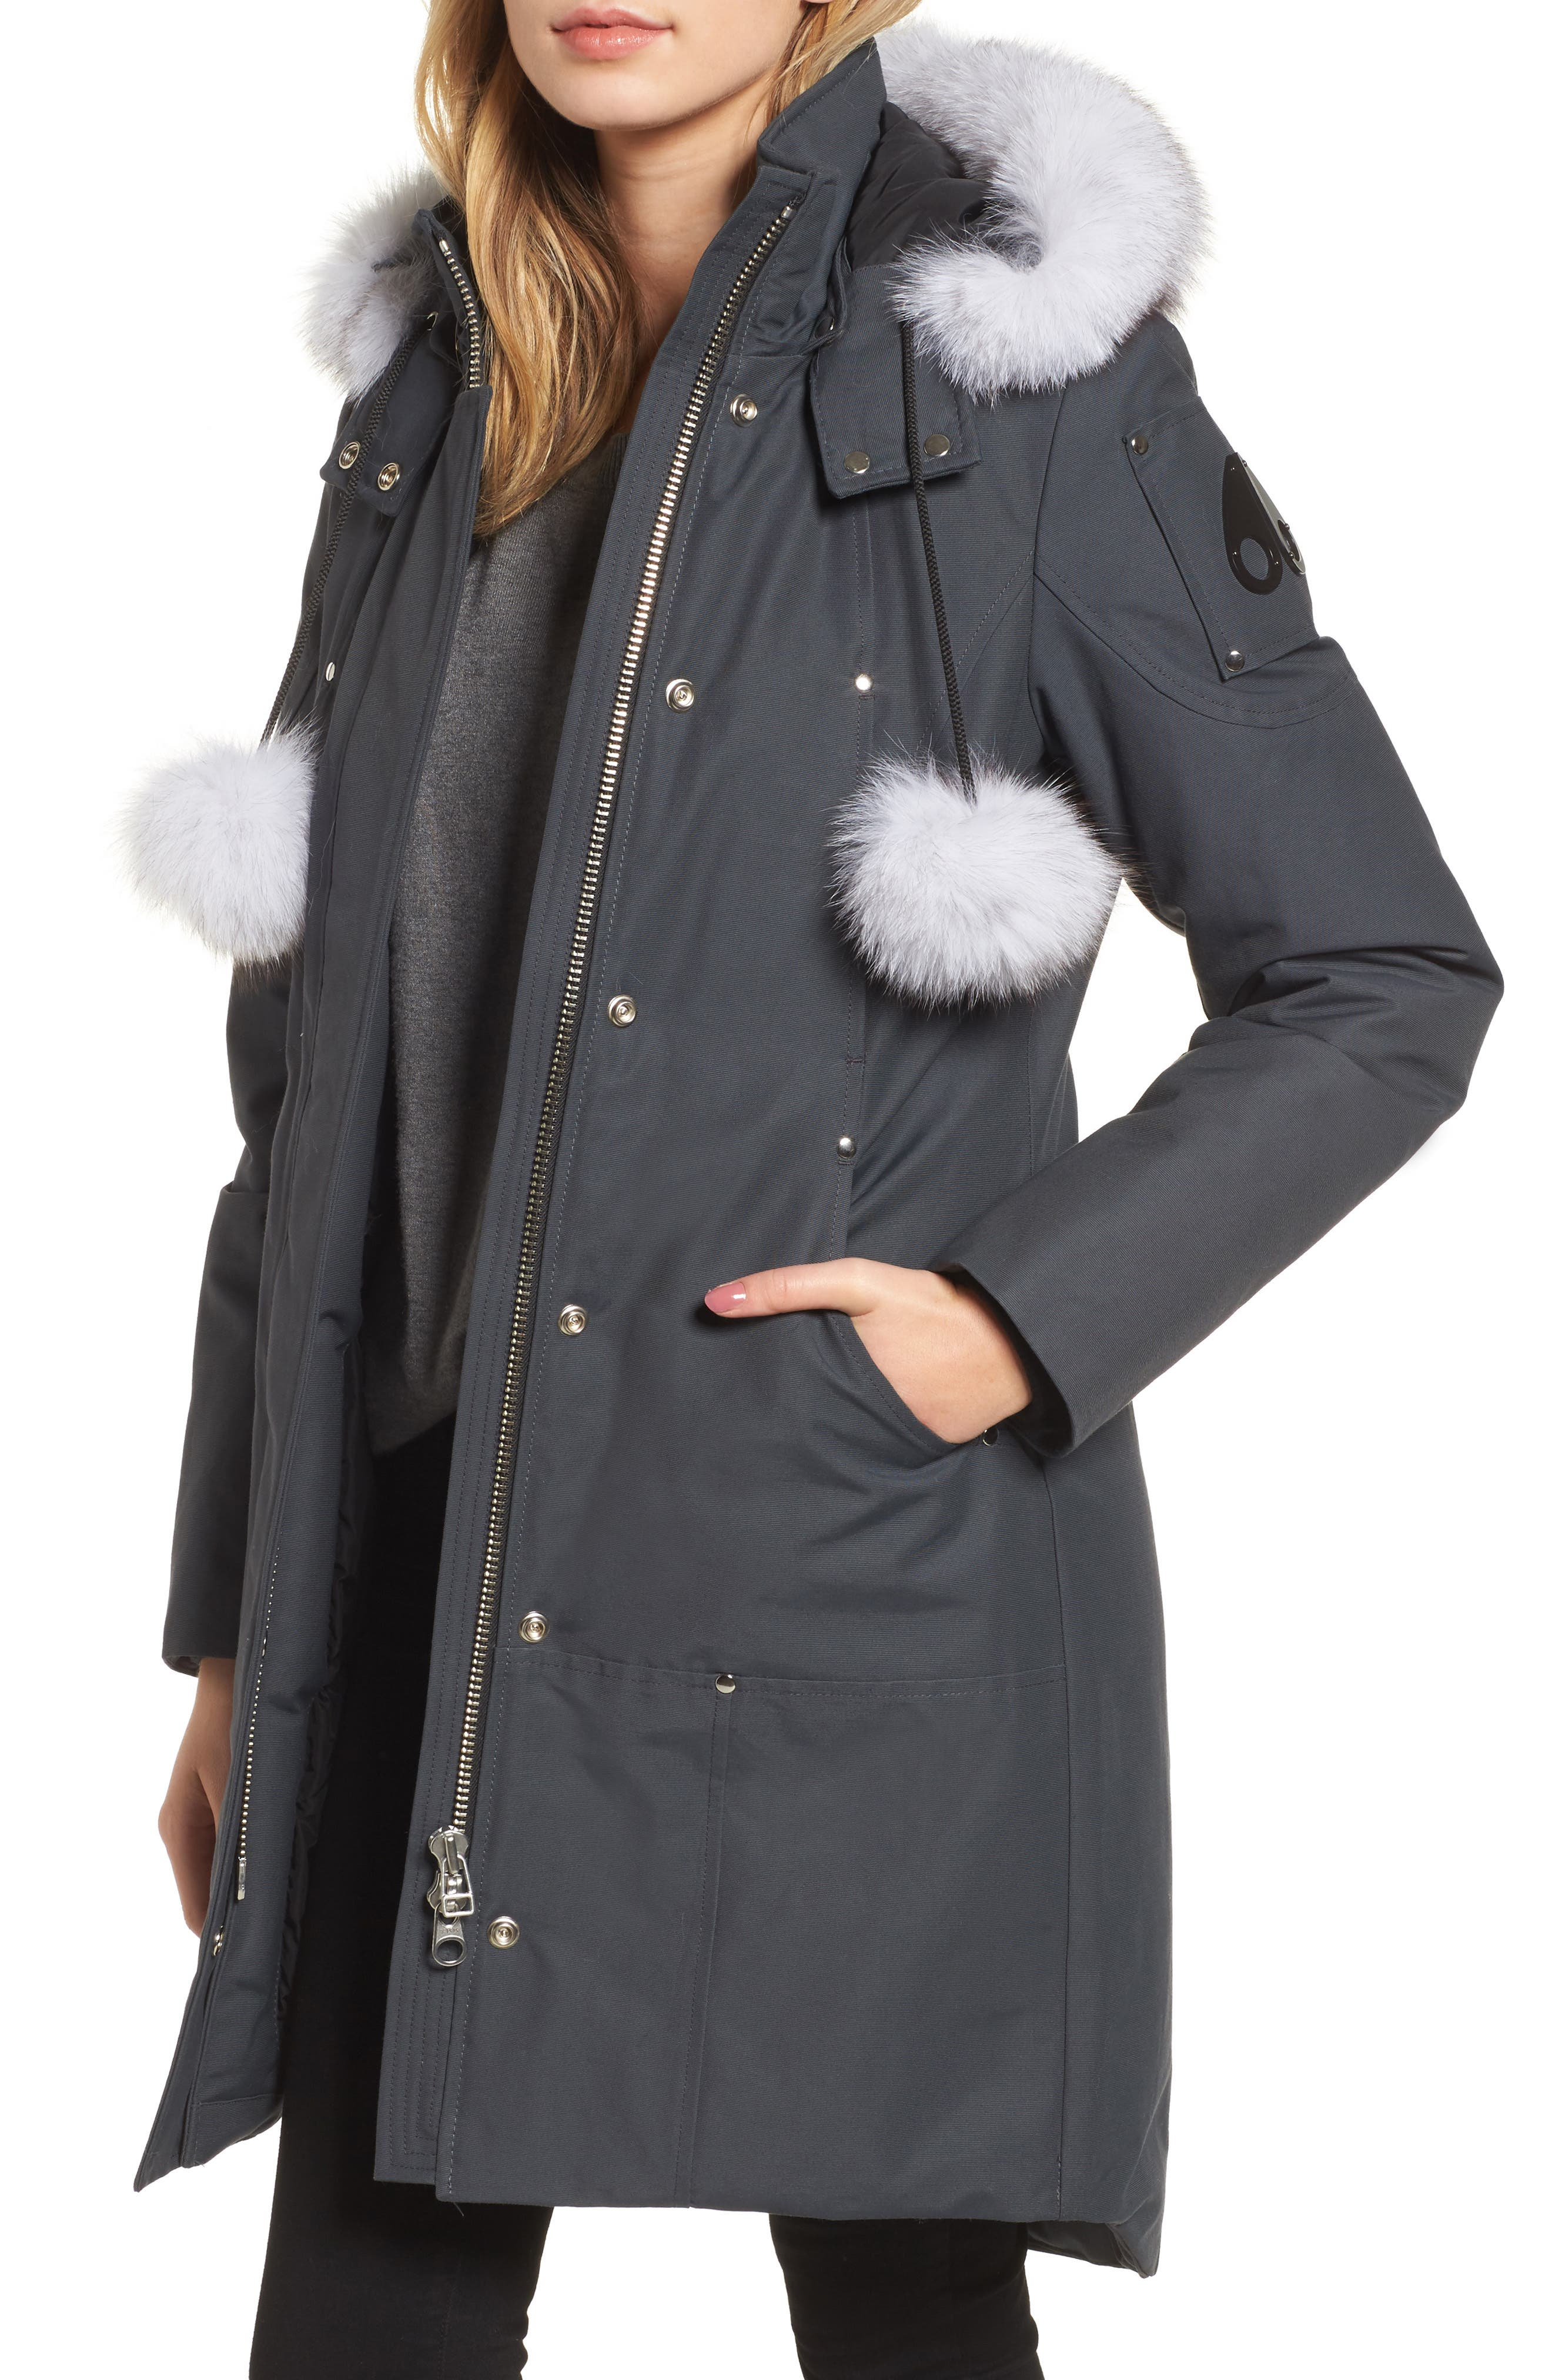 'Stirling' Down Parka with Genuine Fox Fur Trim,                         Main,                         color, Granite/ White Fur